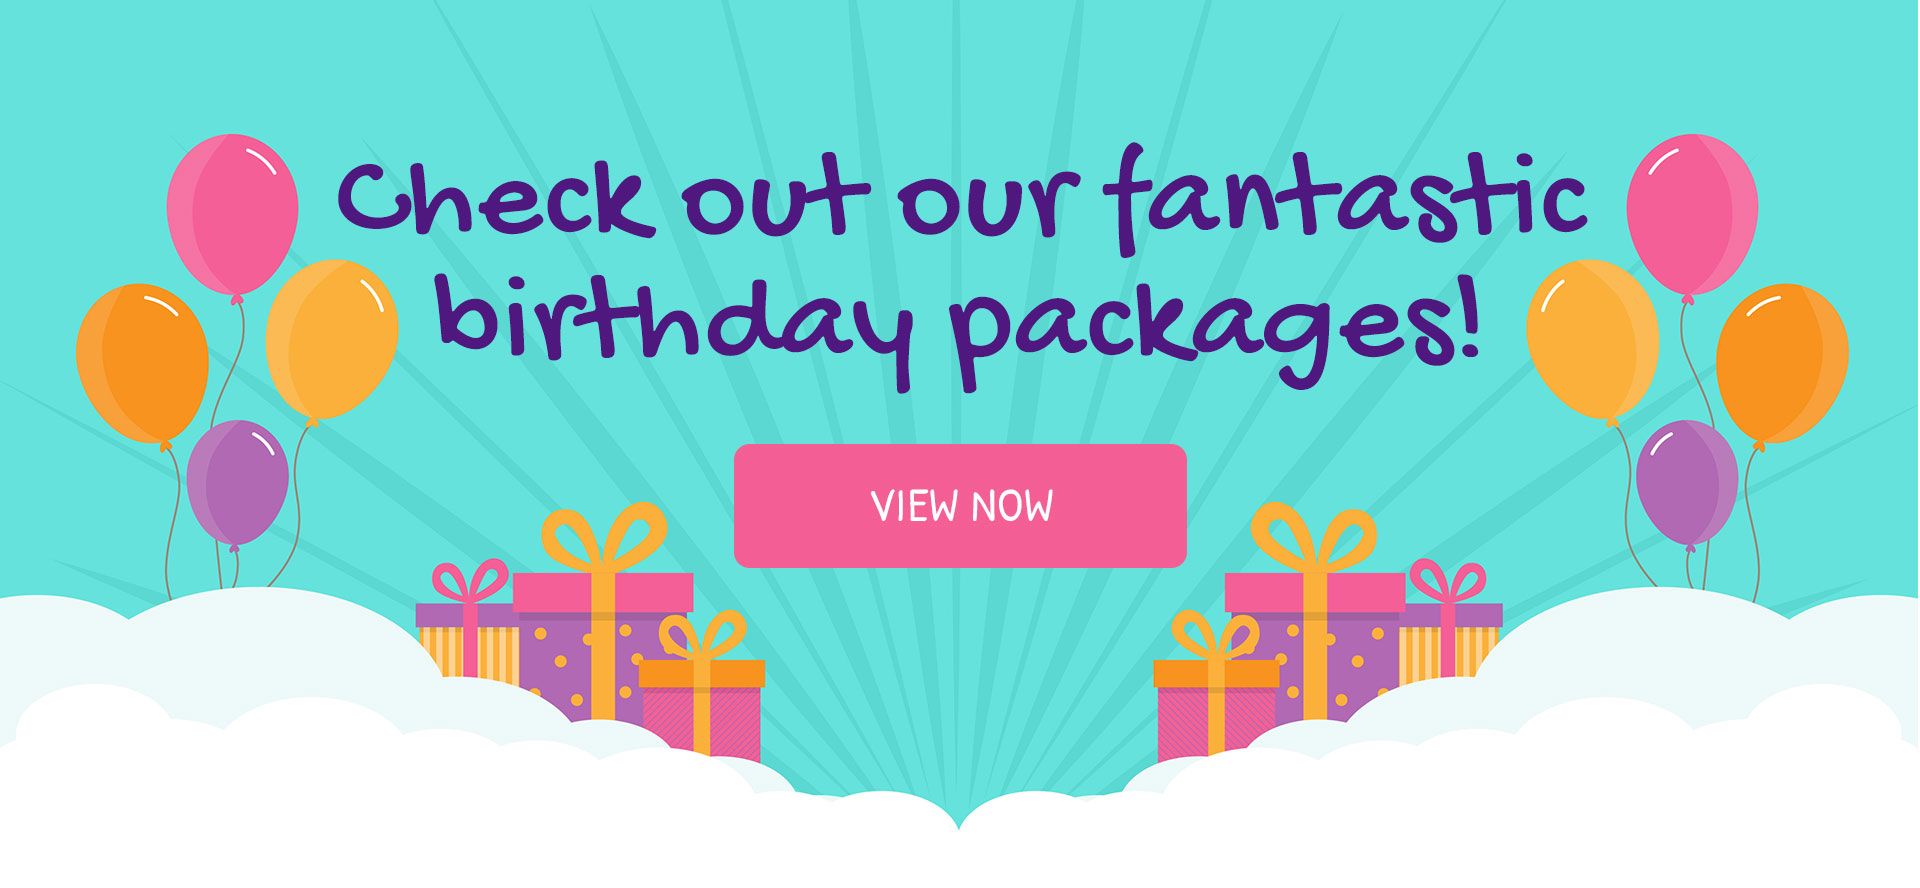 Check out our party packages